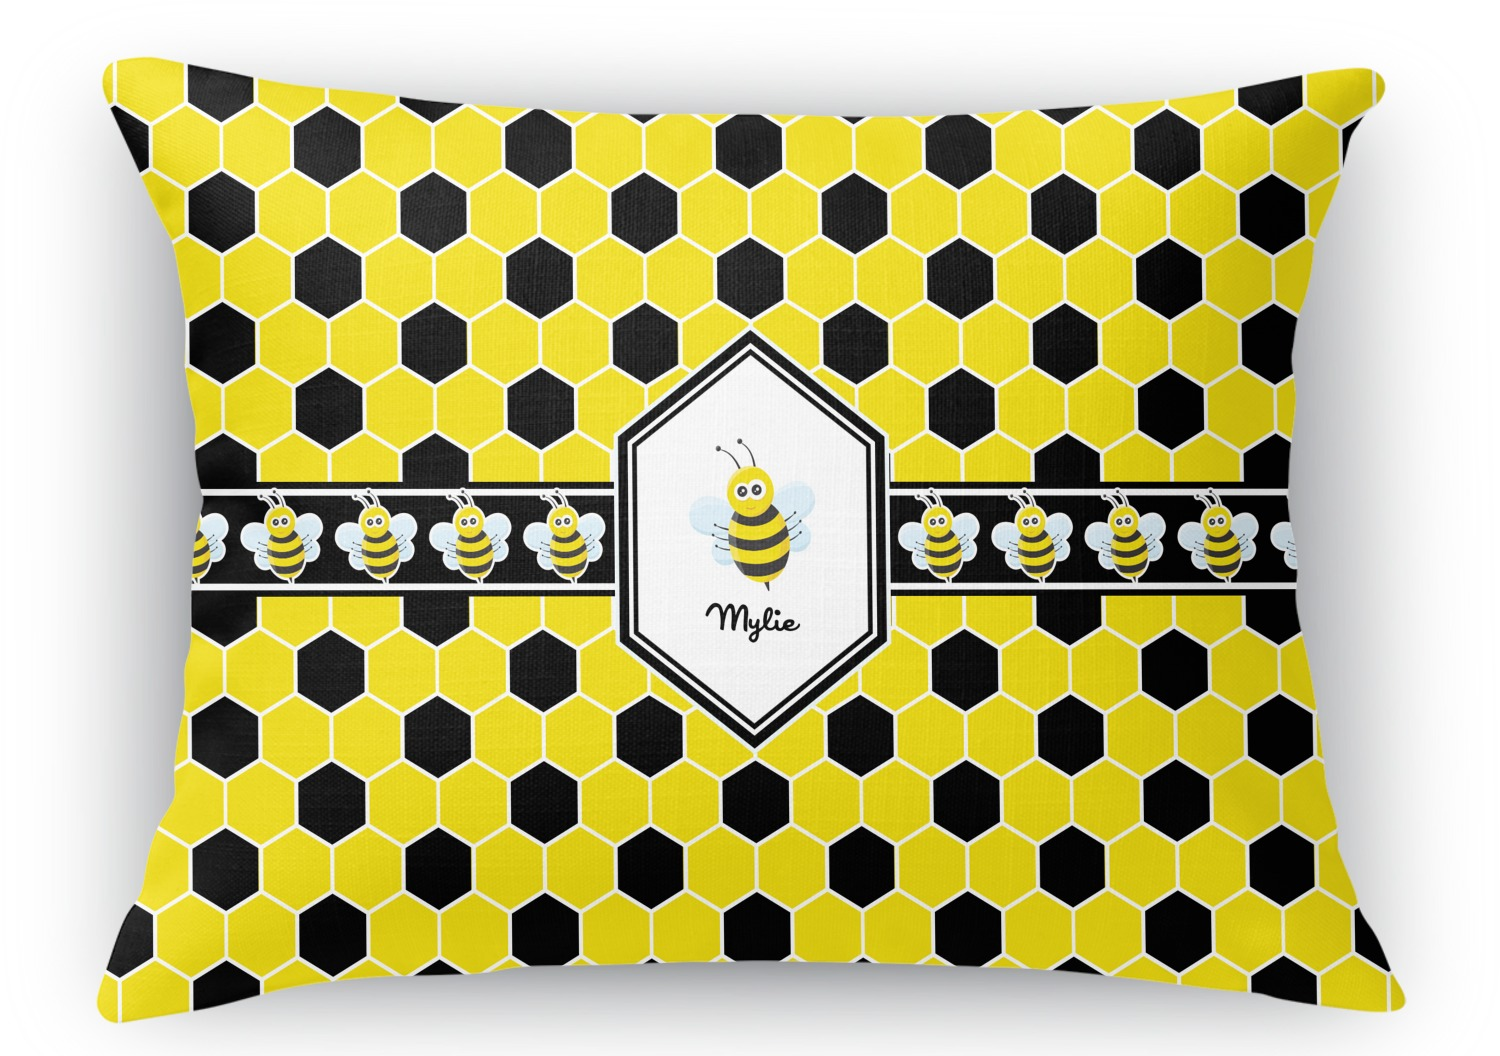 Honeycomb Rectangular Throw Pillow - 18